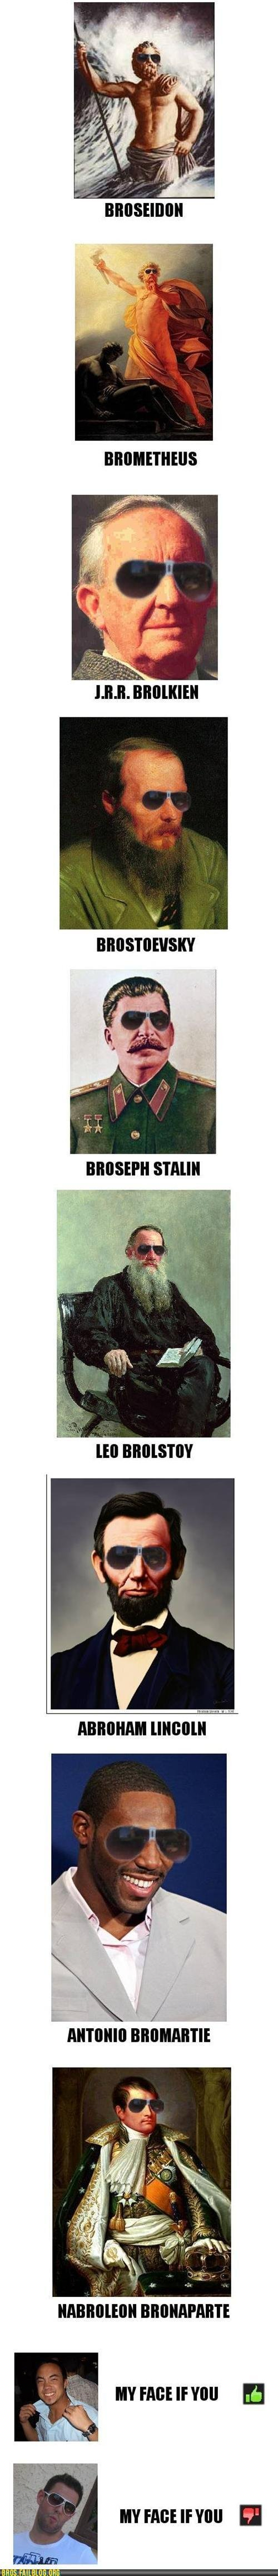 The Brocyclopedia. .. Brodin (too lazy and not skilled enough for sunglasses)